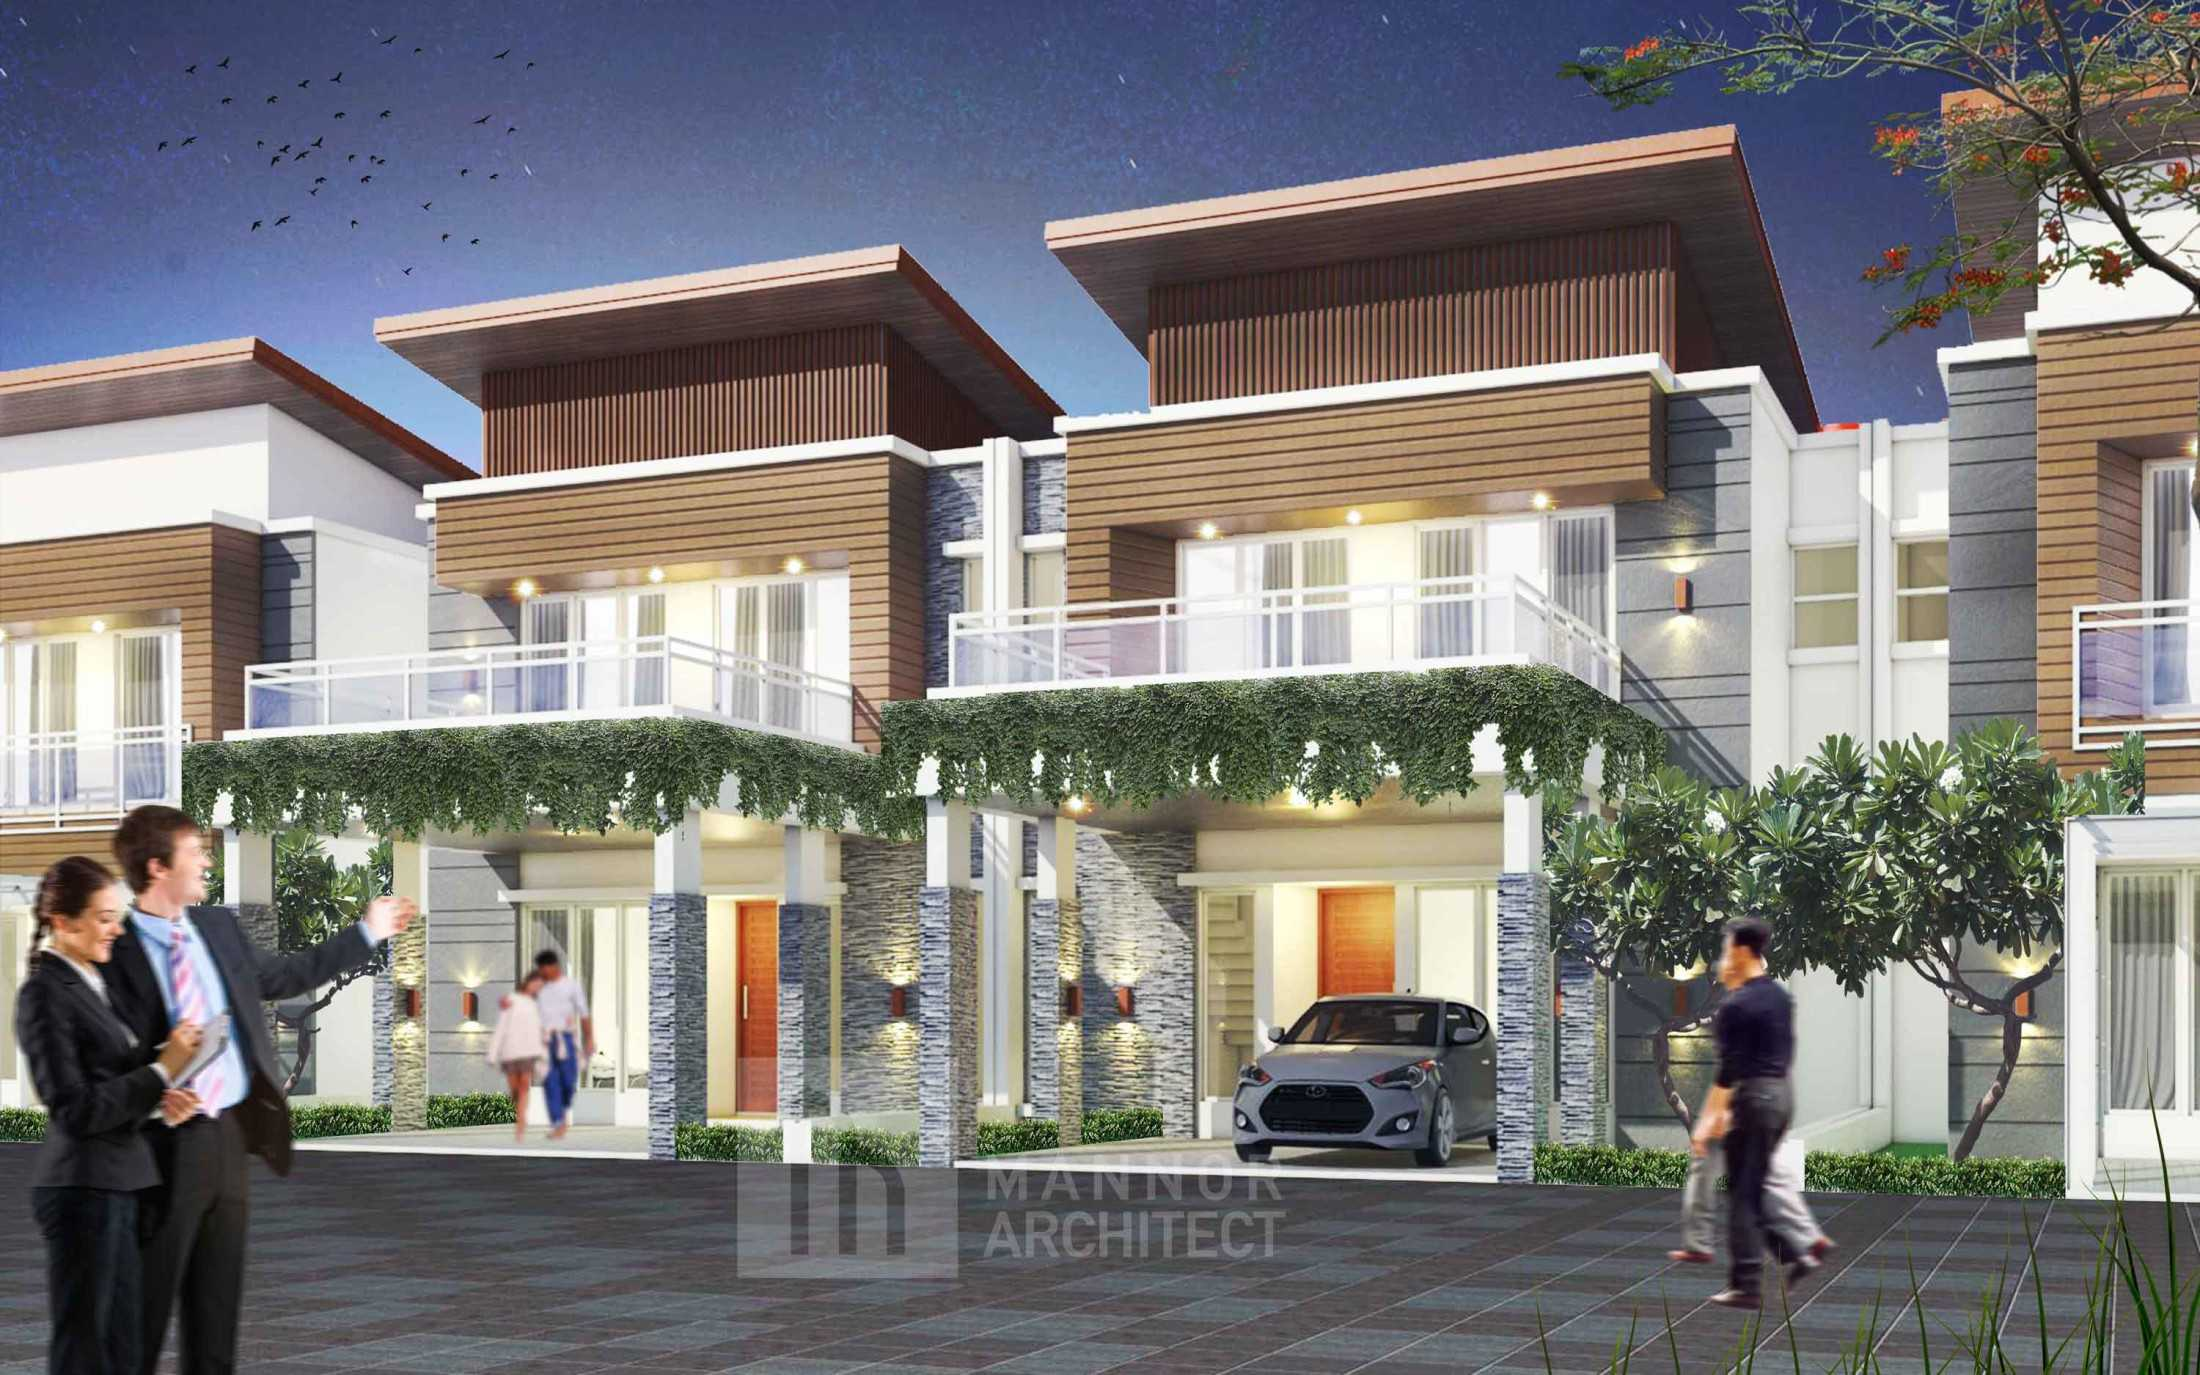 Mannor Architect Green Hills Project Padang - Sumatera Barat Padang, Kota Padang, Sumatera Barat, Indonesia Padang, Kota Padang, Sumatera Barat, Indonesia Mannor-Architect-Green-Hills-Project-Padang-Sumatera-Barat  57429